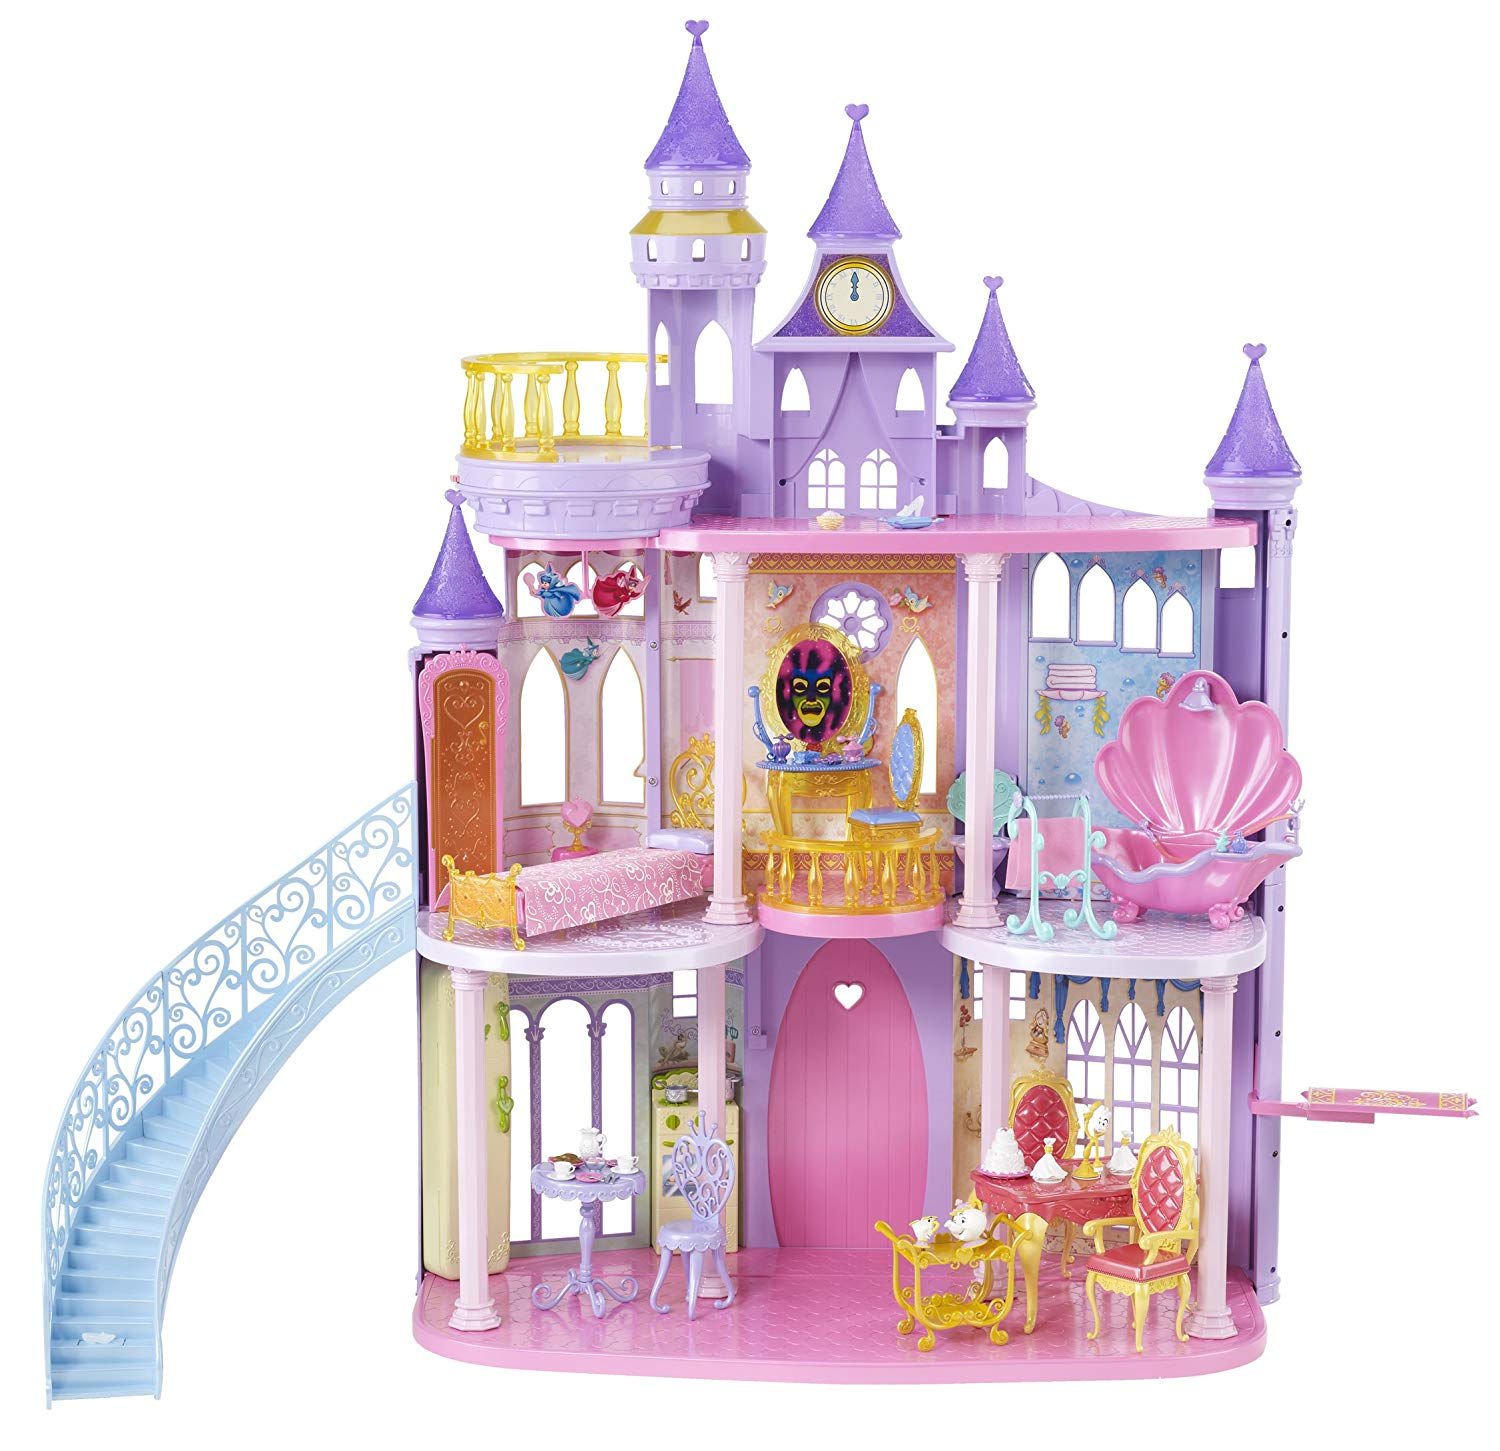 inspirational disney princess castle dollhouse  fel7com